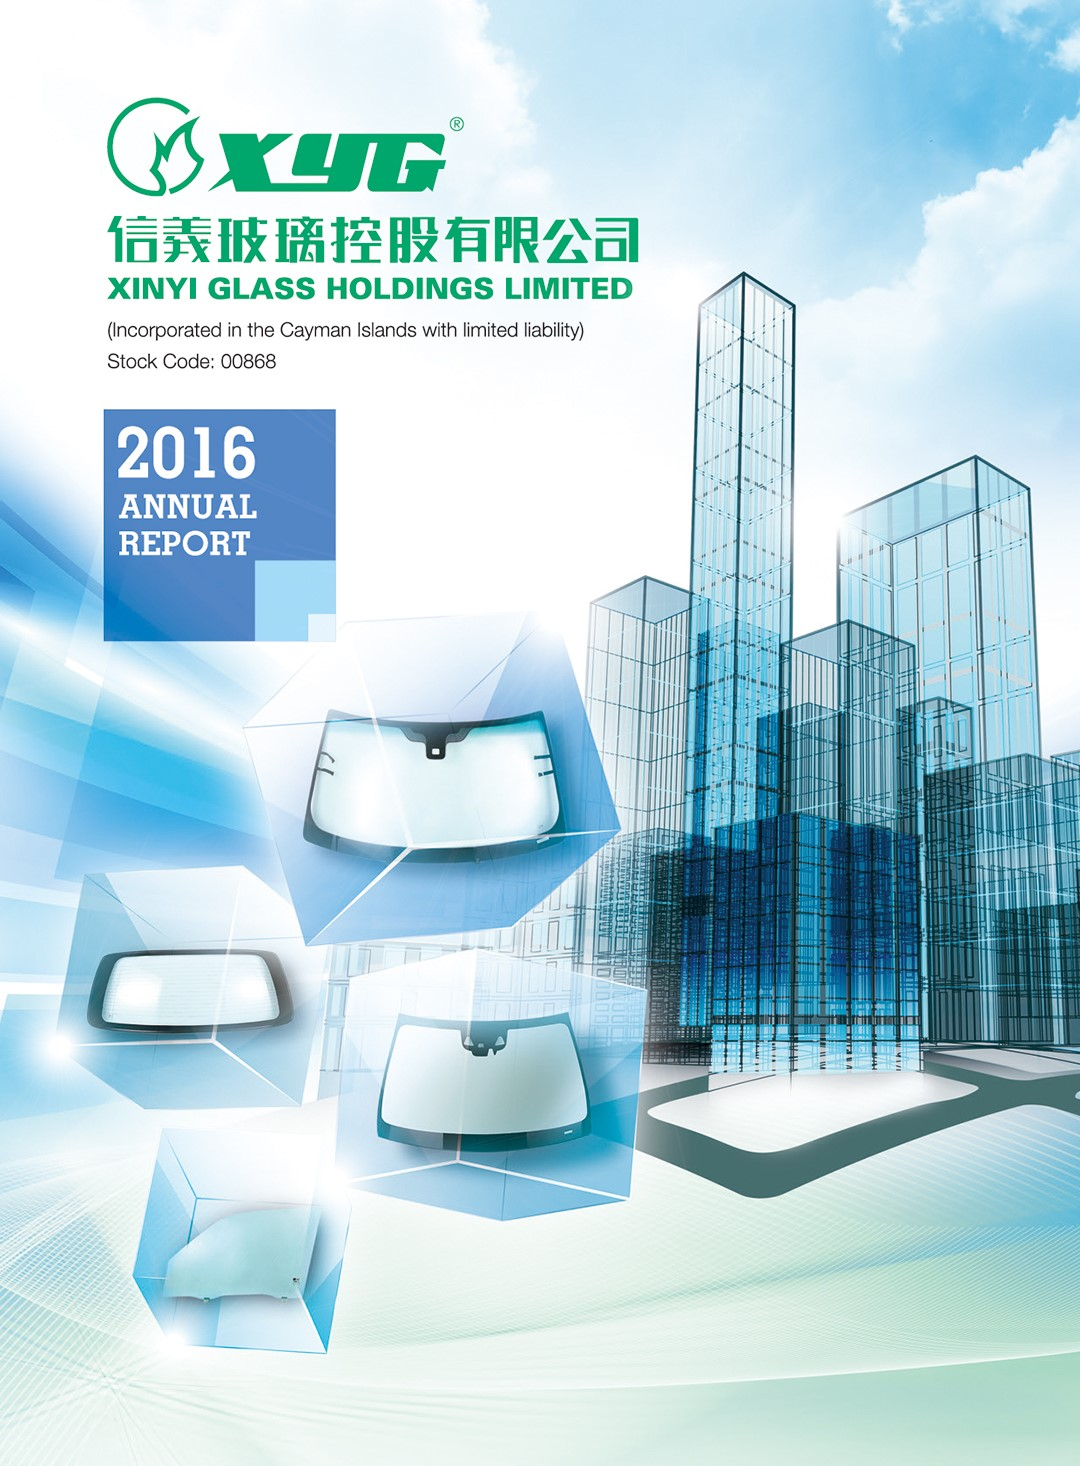 Xinyi Glass Holdings Limited